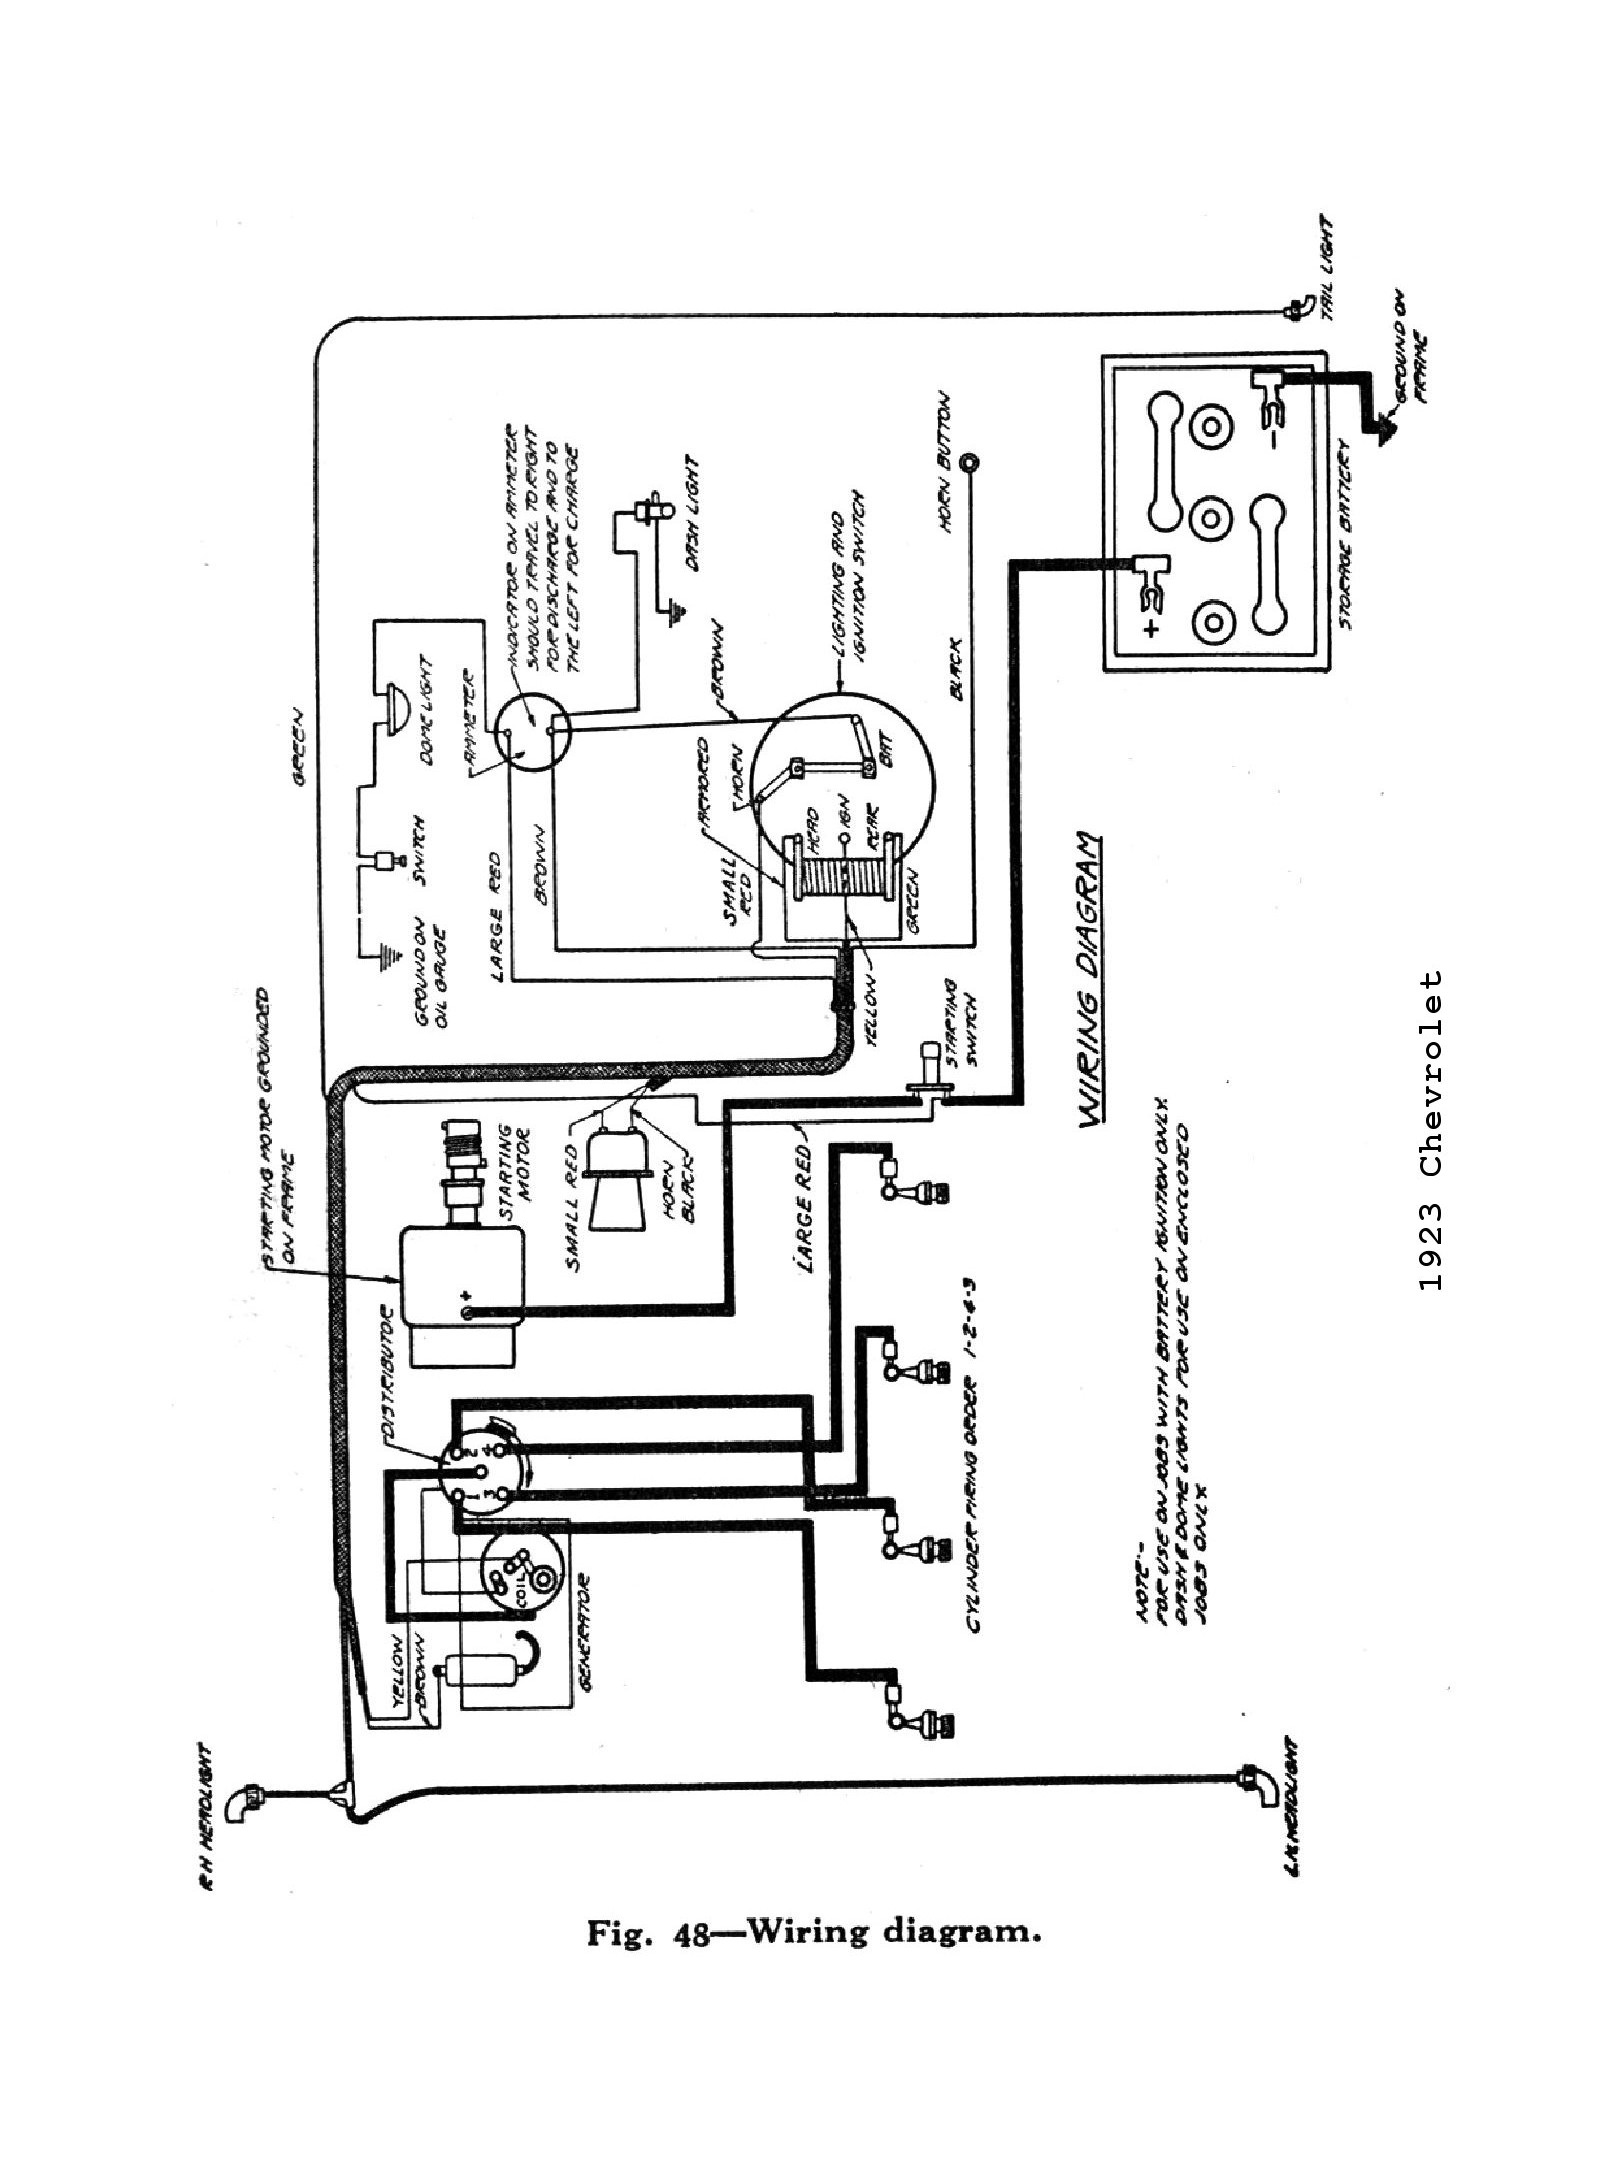 hight resolution of 2001 impala gas gauge wiring diagram